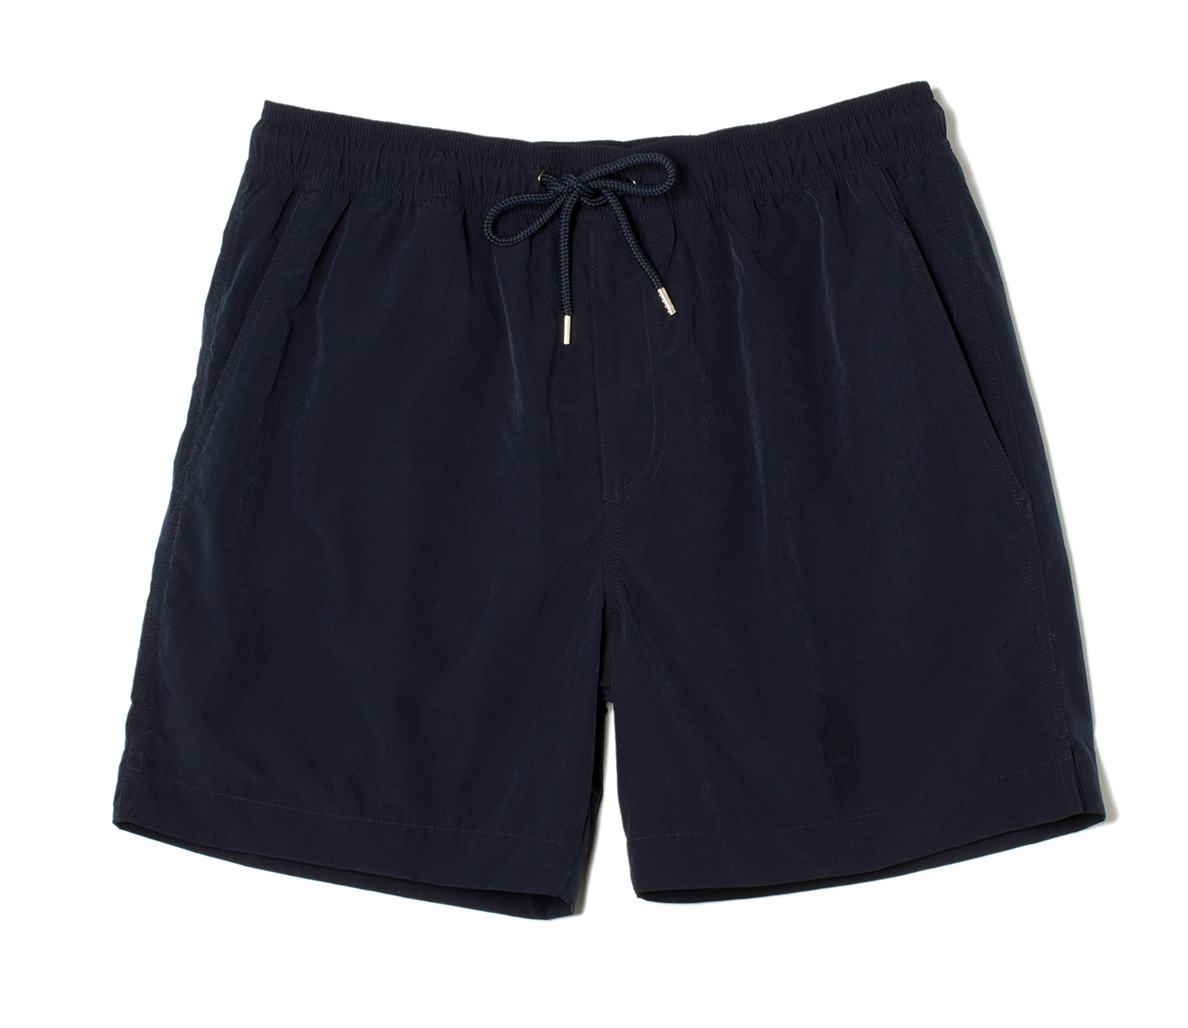 bc184825e89 The Best 15 Swim Trunks For Men